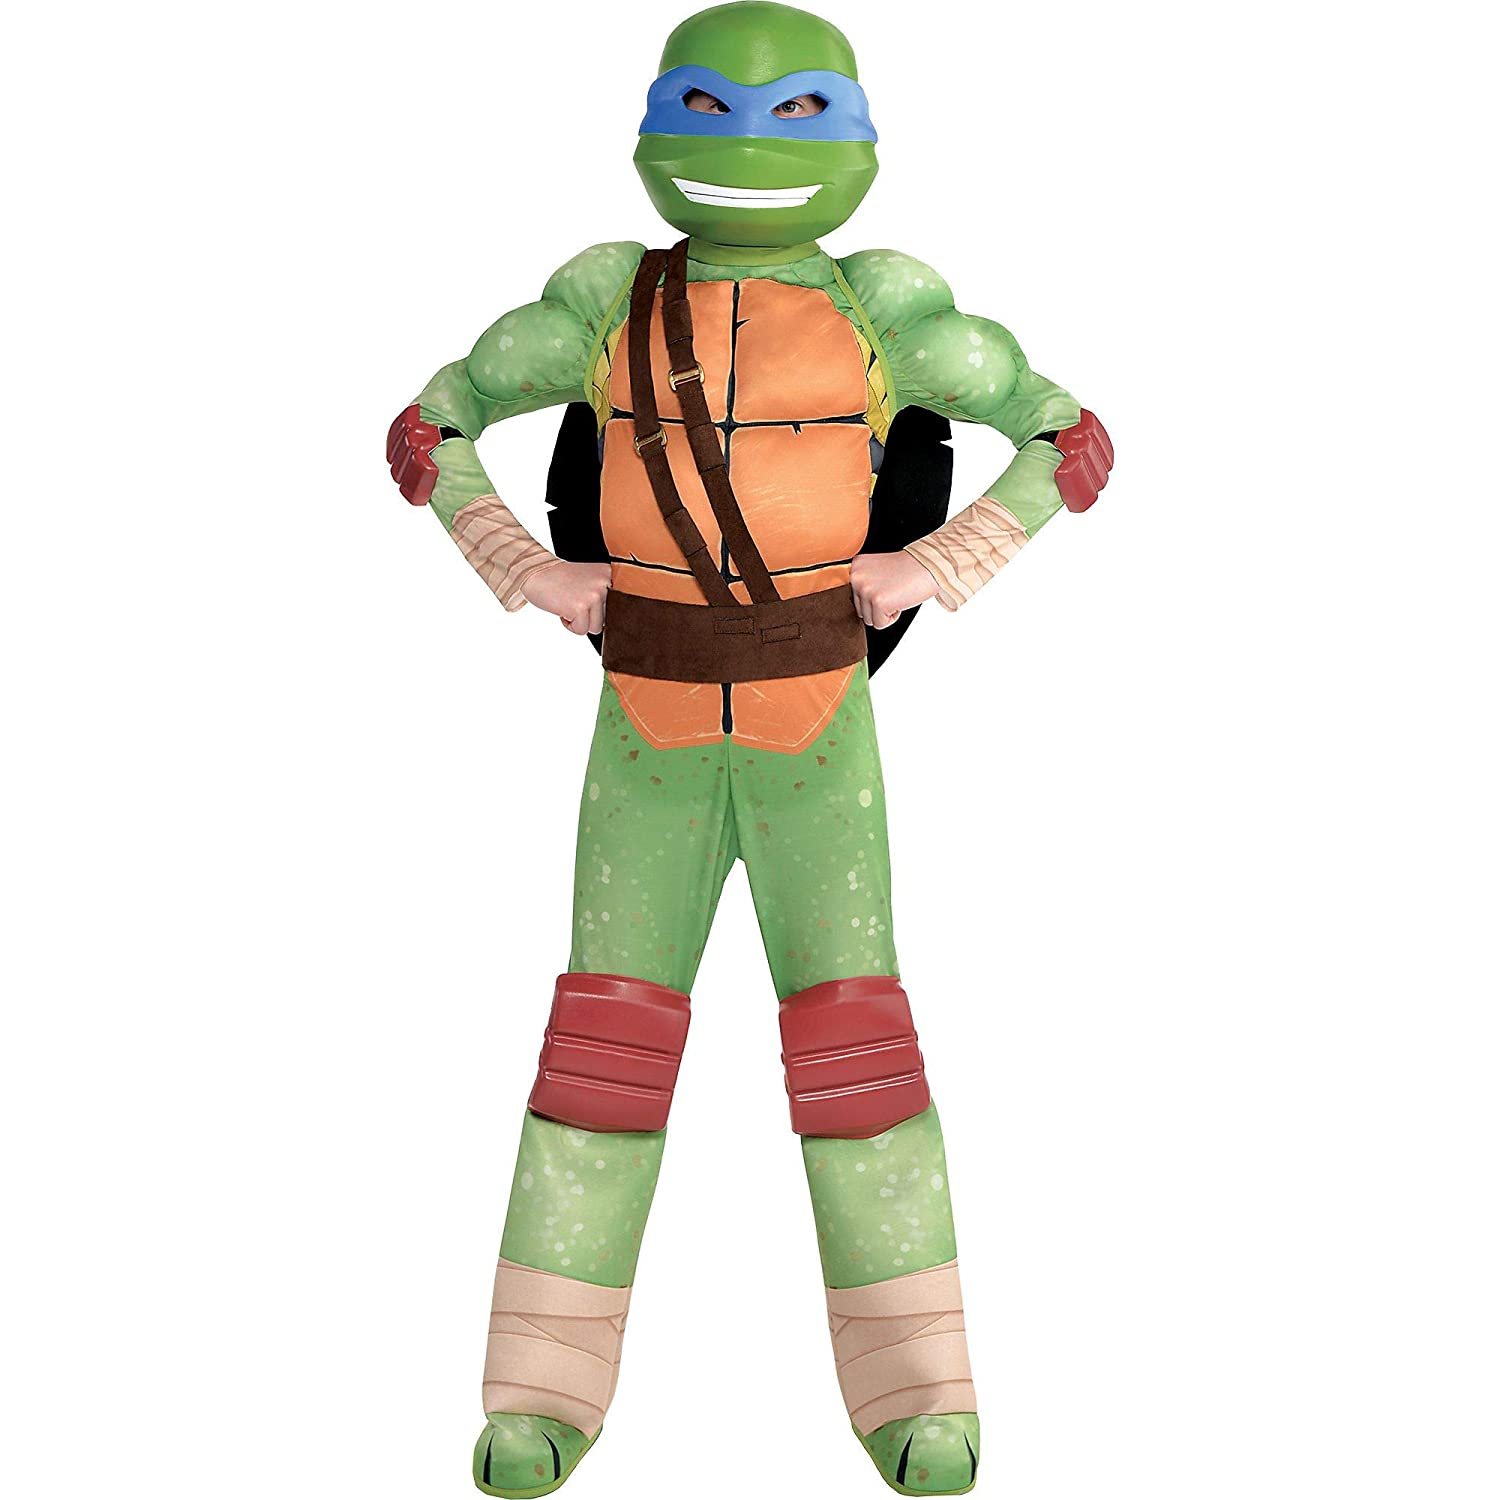 Amscan Teenage Mutant Ninja Turtles Leonardo Muscle Halloween Costume for Boys, Small, with Included Accessories